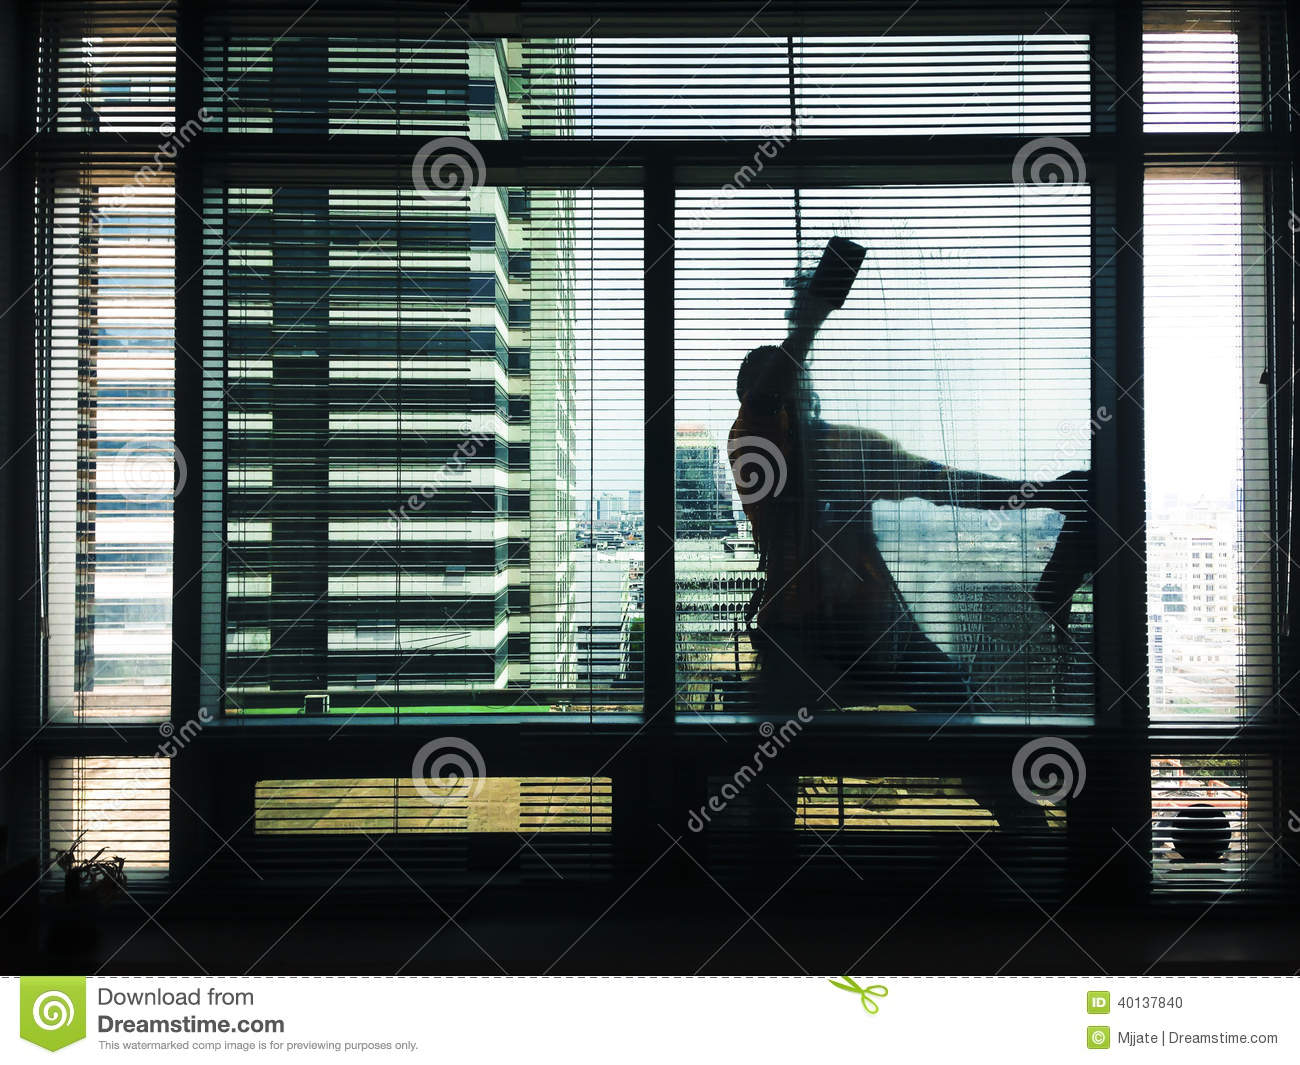 A man cleaning office building glass